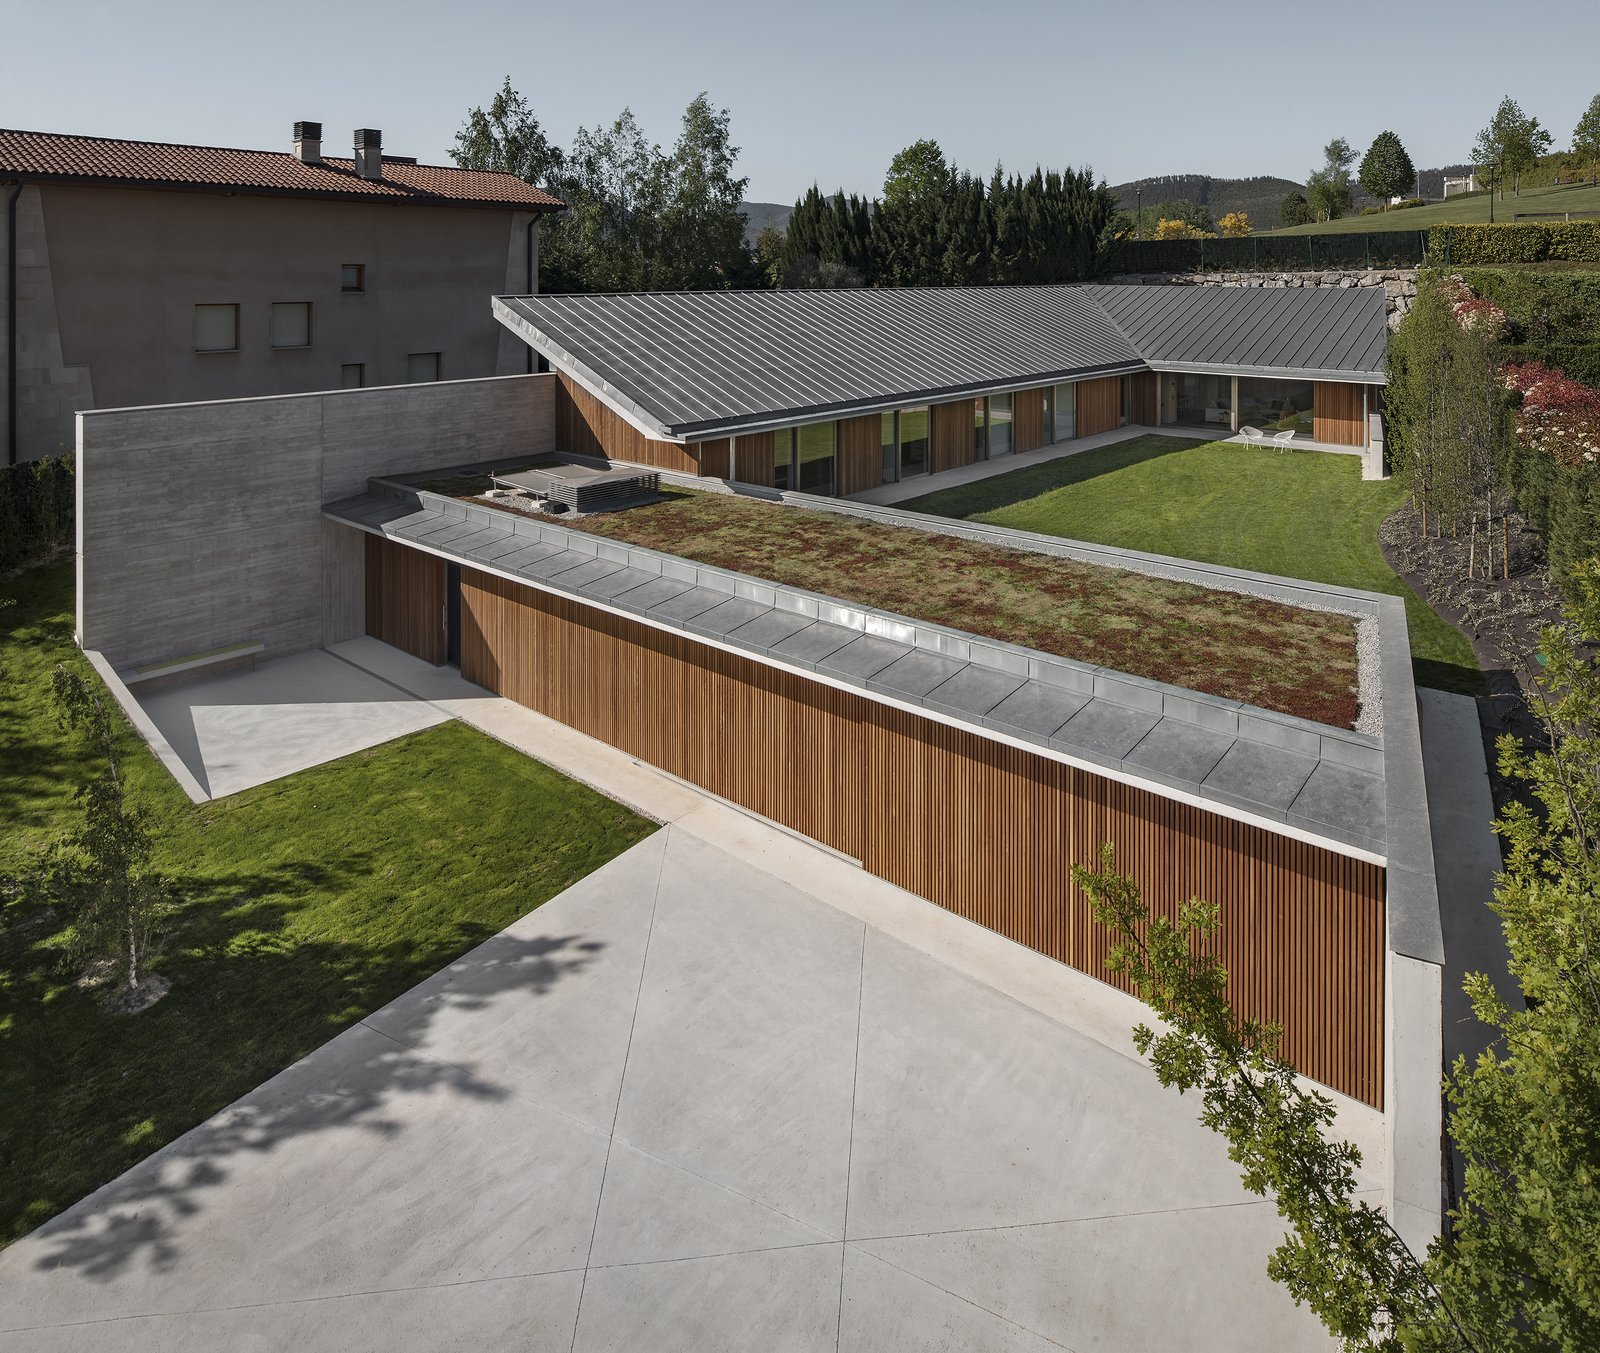 Outdoor, Front Yard, Garden, Rooftop, Trees, Grass, Gardens, Concrete Patio, Porch, Deck, Metal Patio, Porch, Deck, Wood Patio, Porch, Deck, and Wood Fences, Wall  The Öcher House by MLMR Architecture Consultancy